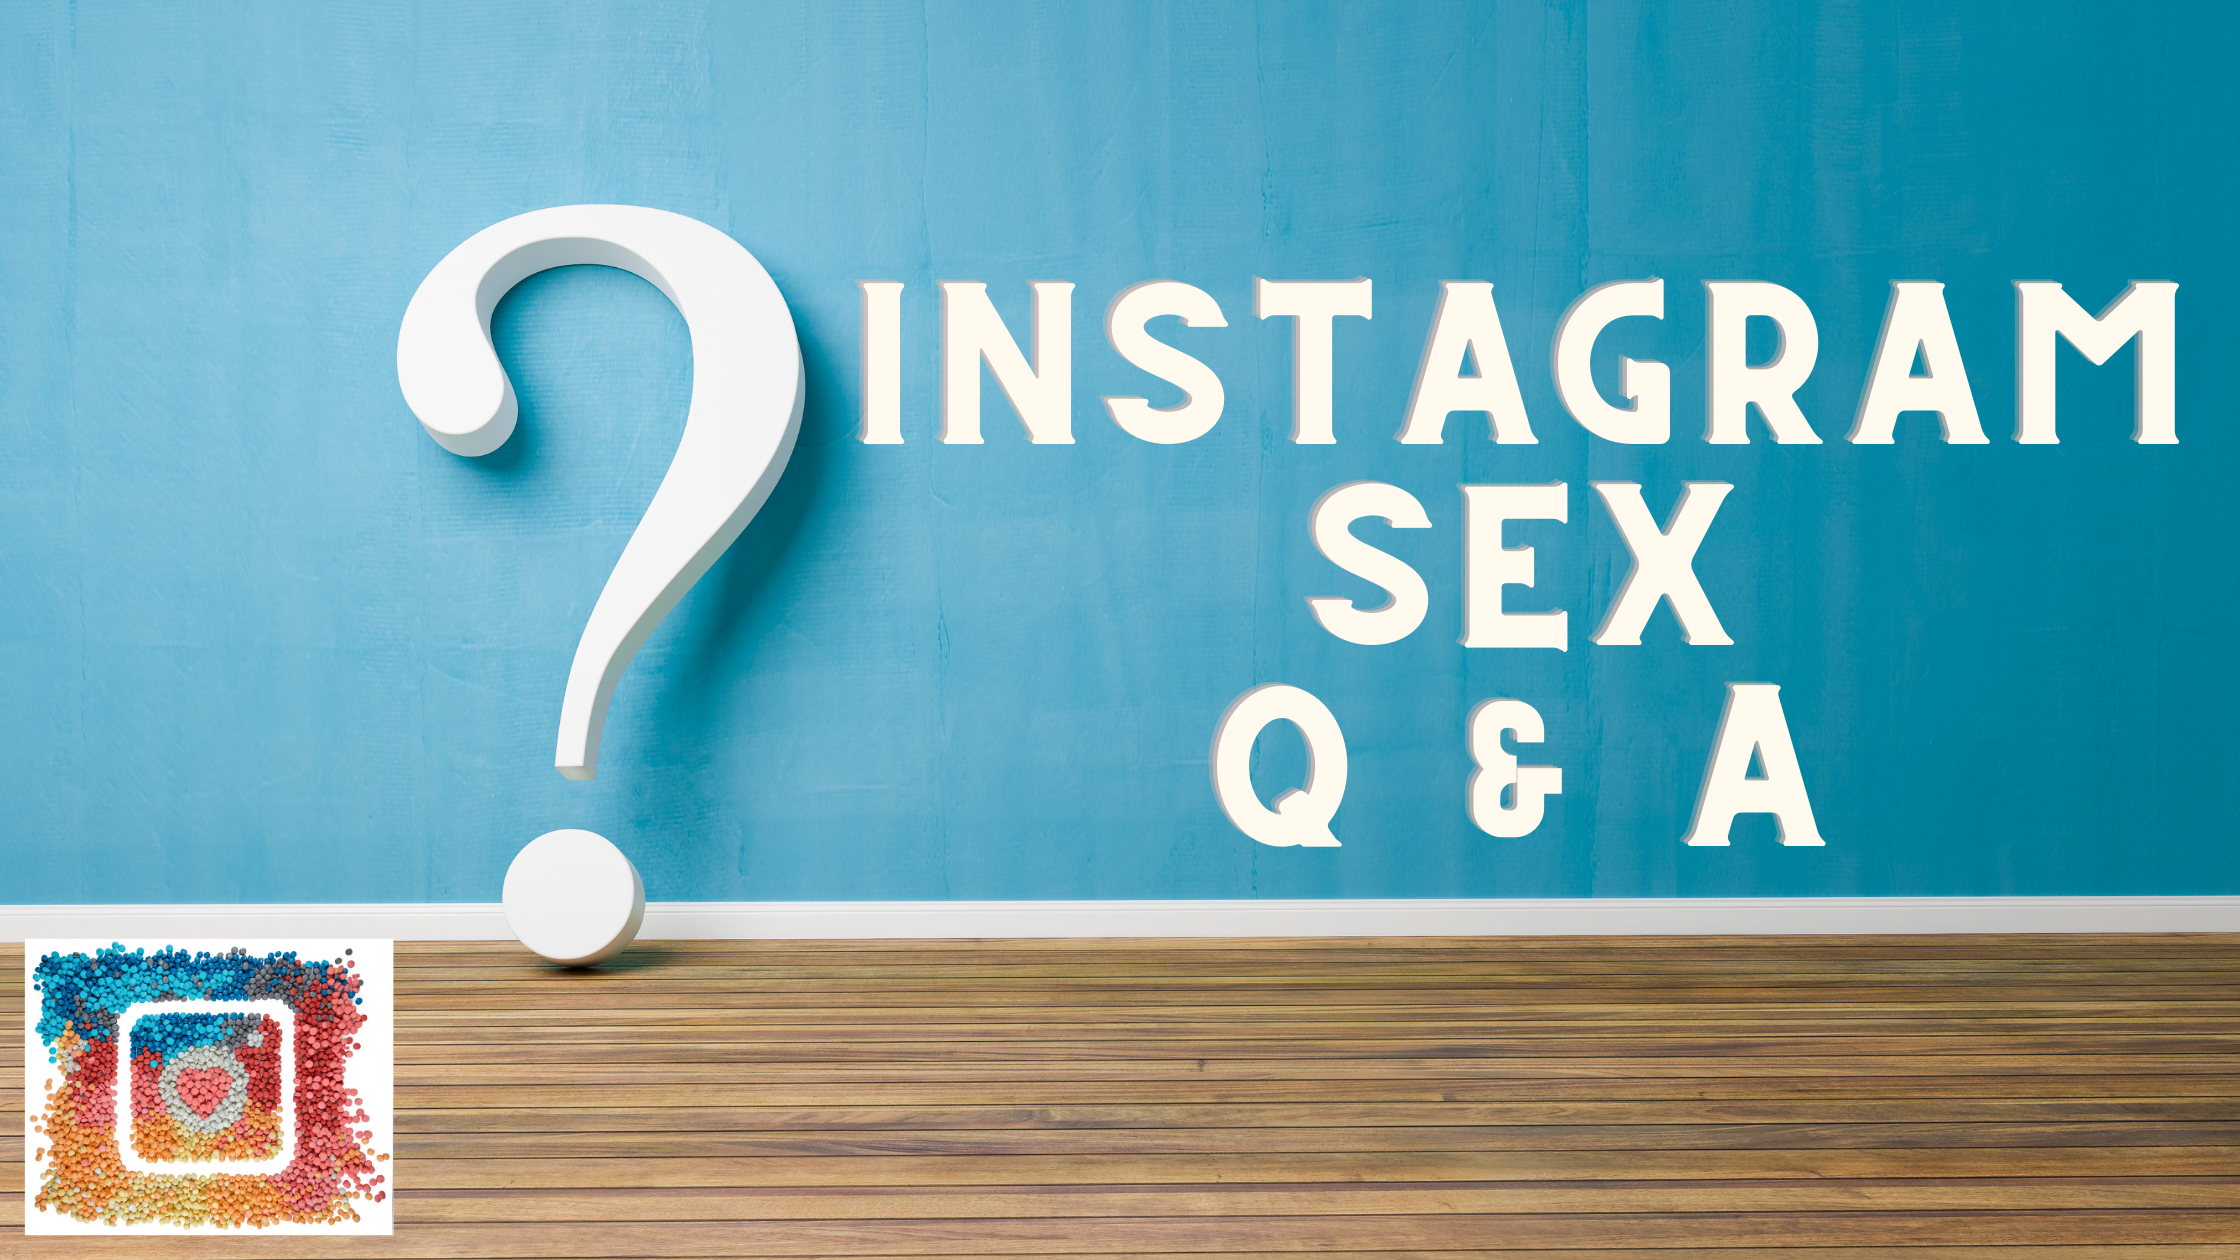 May 2021 Instagram Sex Q & A